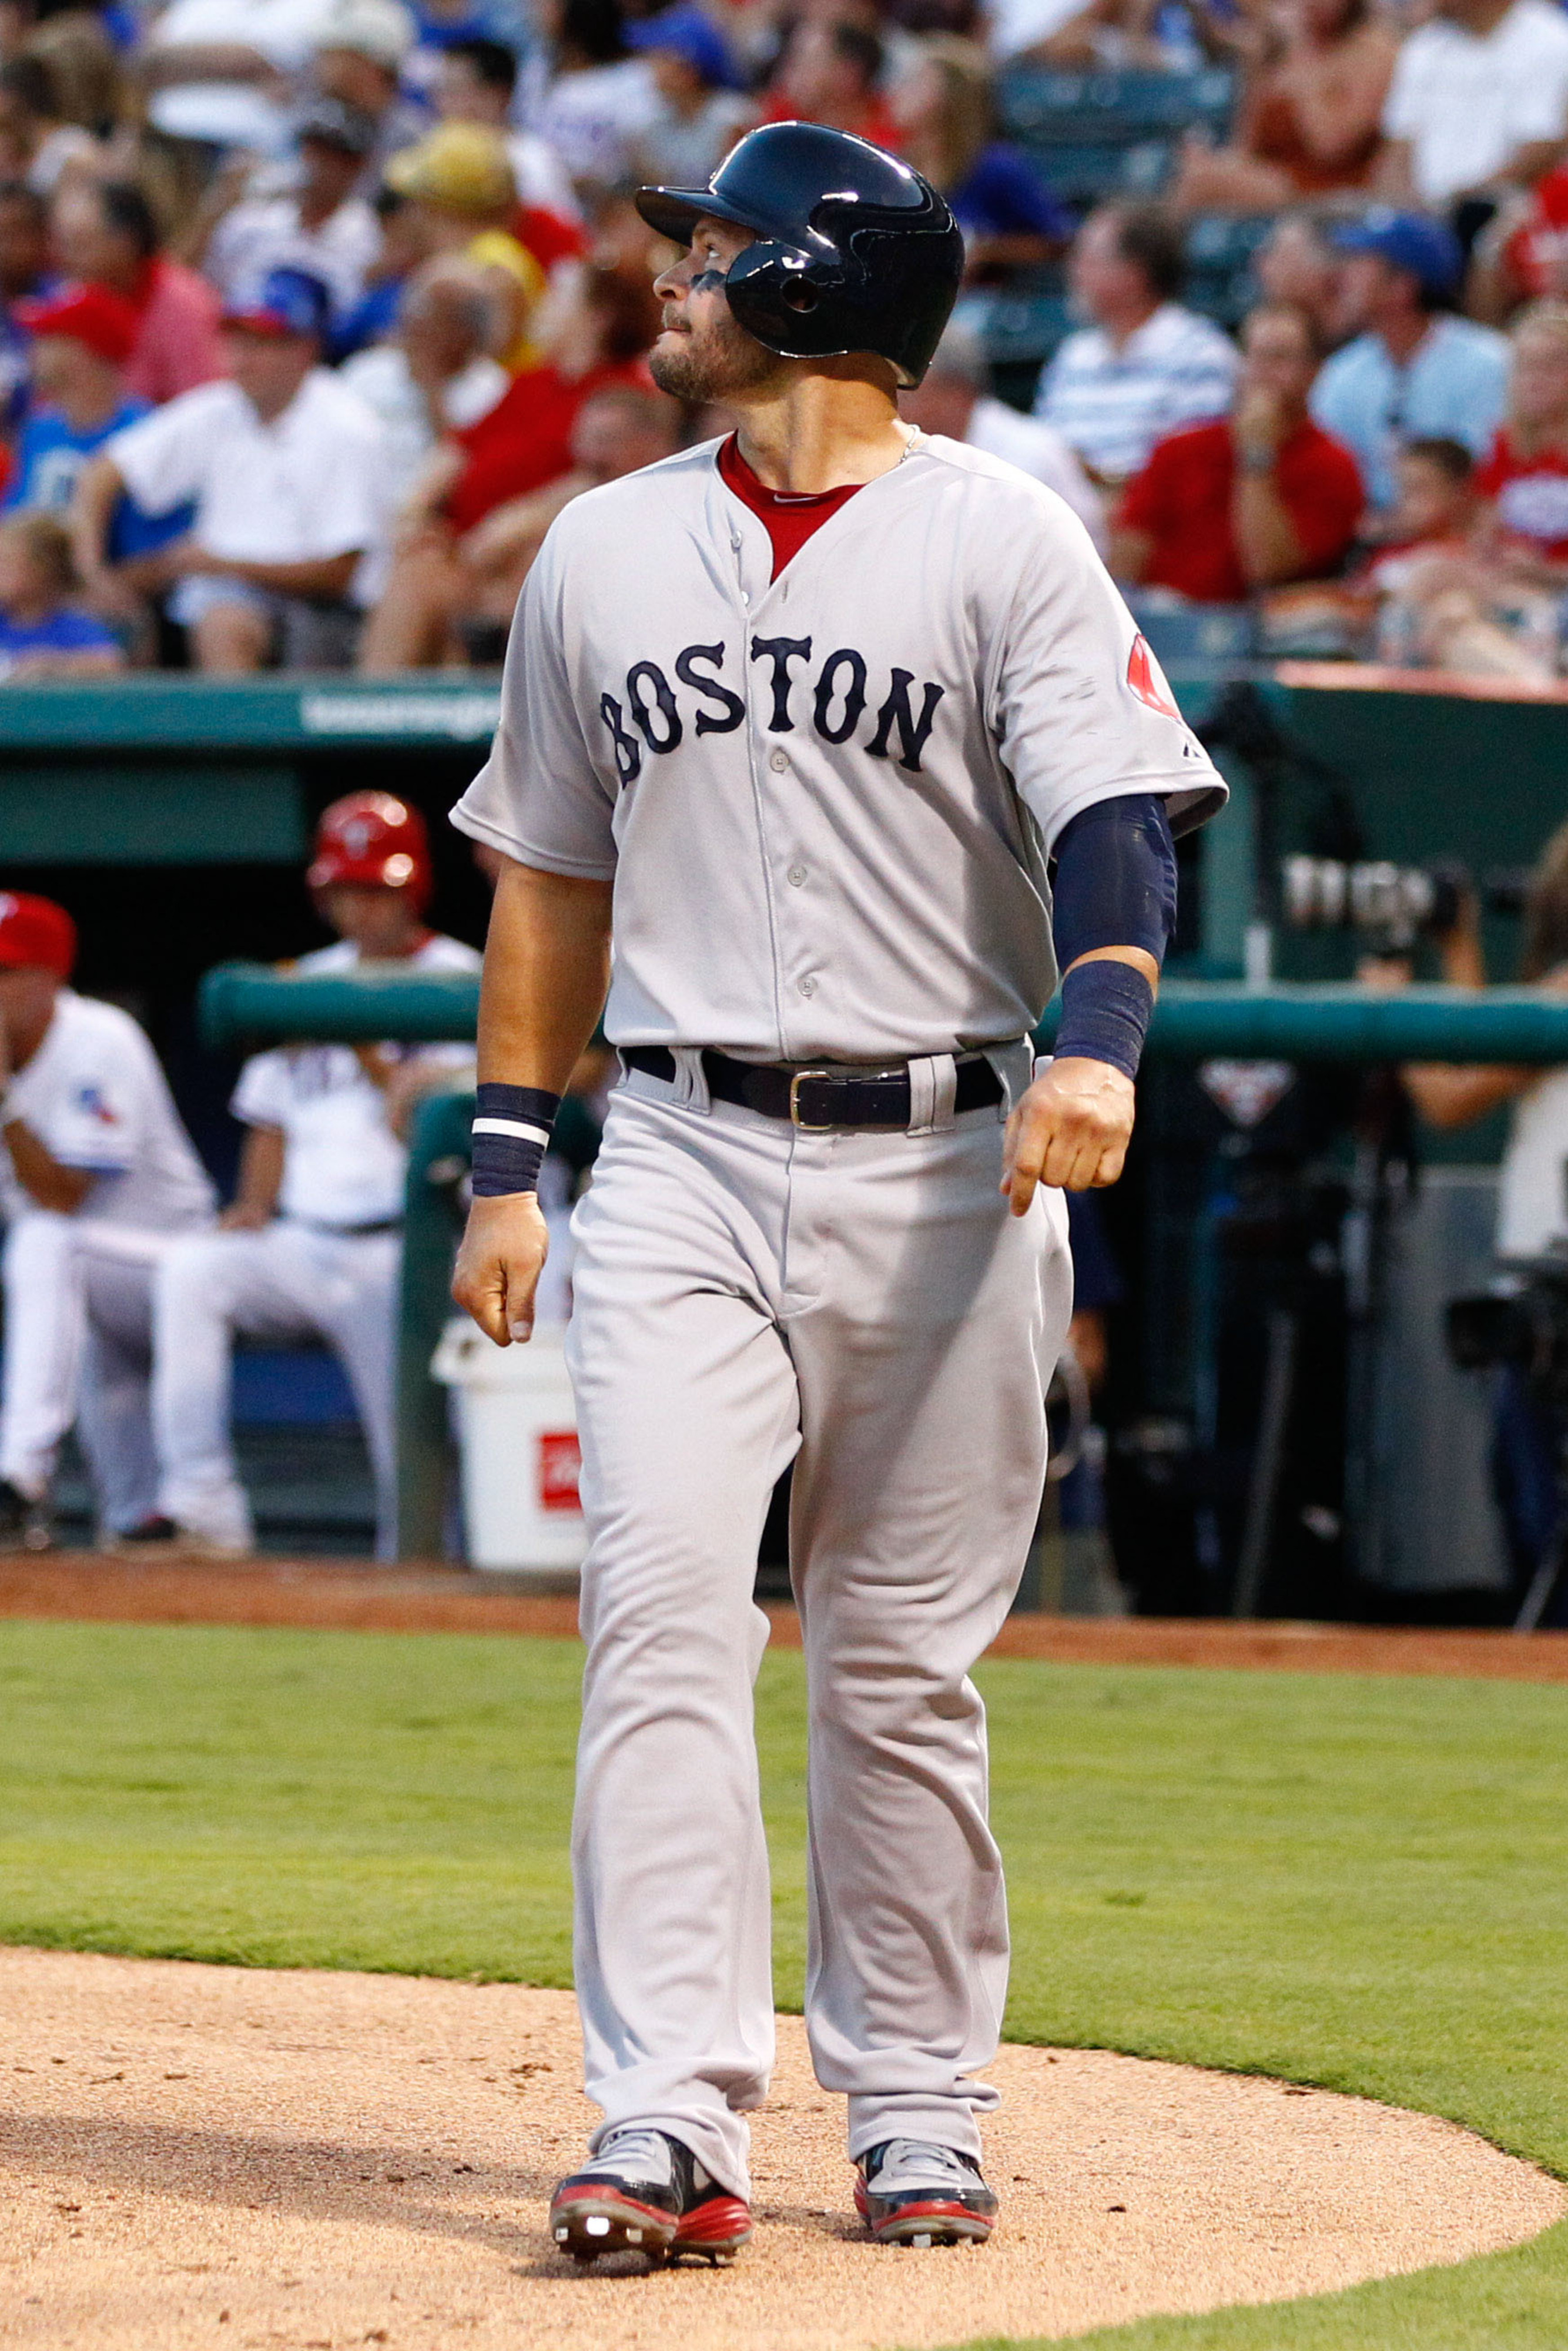 July 24, 2012; Arlington, TX, USA; Boston Red Sox right fielder Cody Ross (7) during the game against the Texas Rangers in the fourth inning at Rangers Ballpark in Arlington. Mandatory Credit: Jim Cowsert-US PRESSWIRE